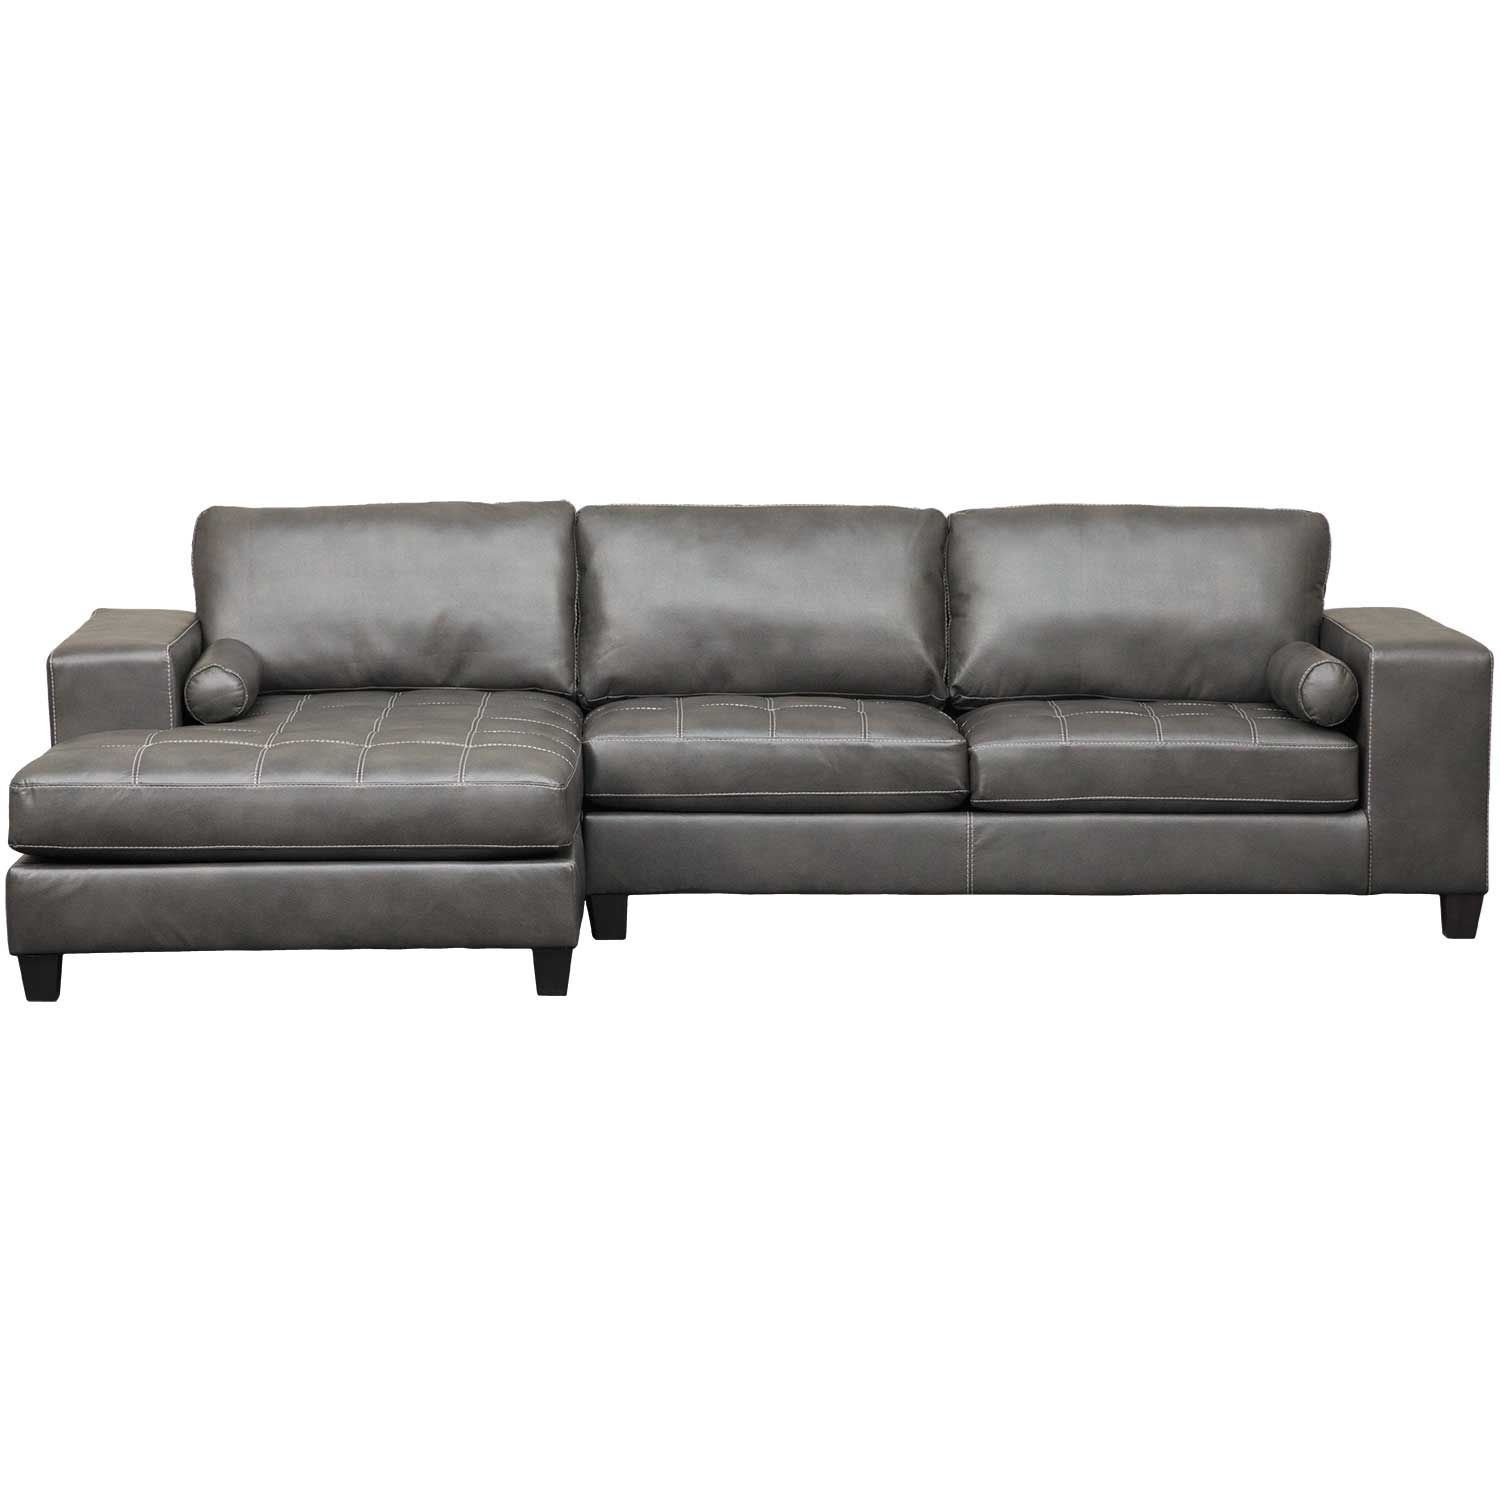 Nokomis 2 Piece Sectional With Laf Chaise | 8770116/8770167 | Ashley pertaining to Cosmos Grey 2 Piece Sectionals With Laf Chaise (Image 17 of 30)